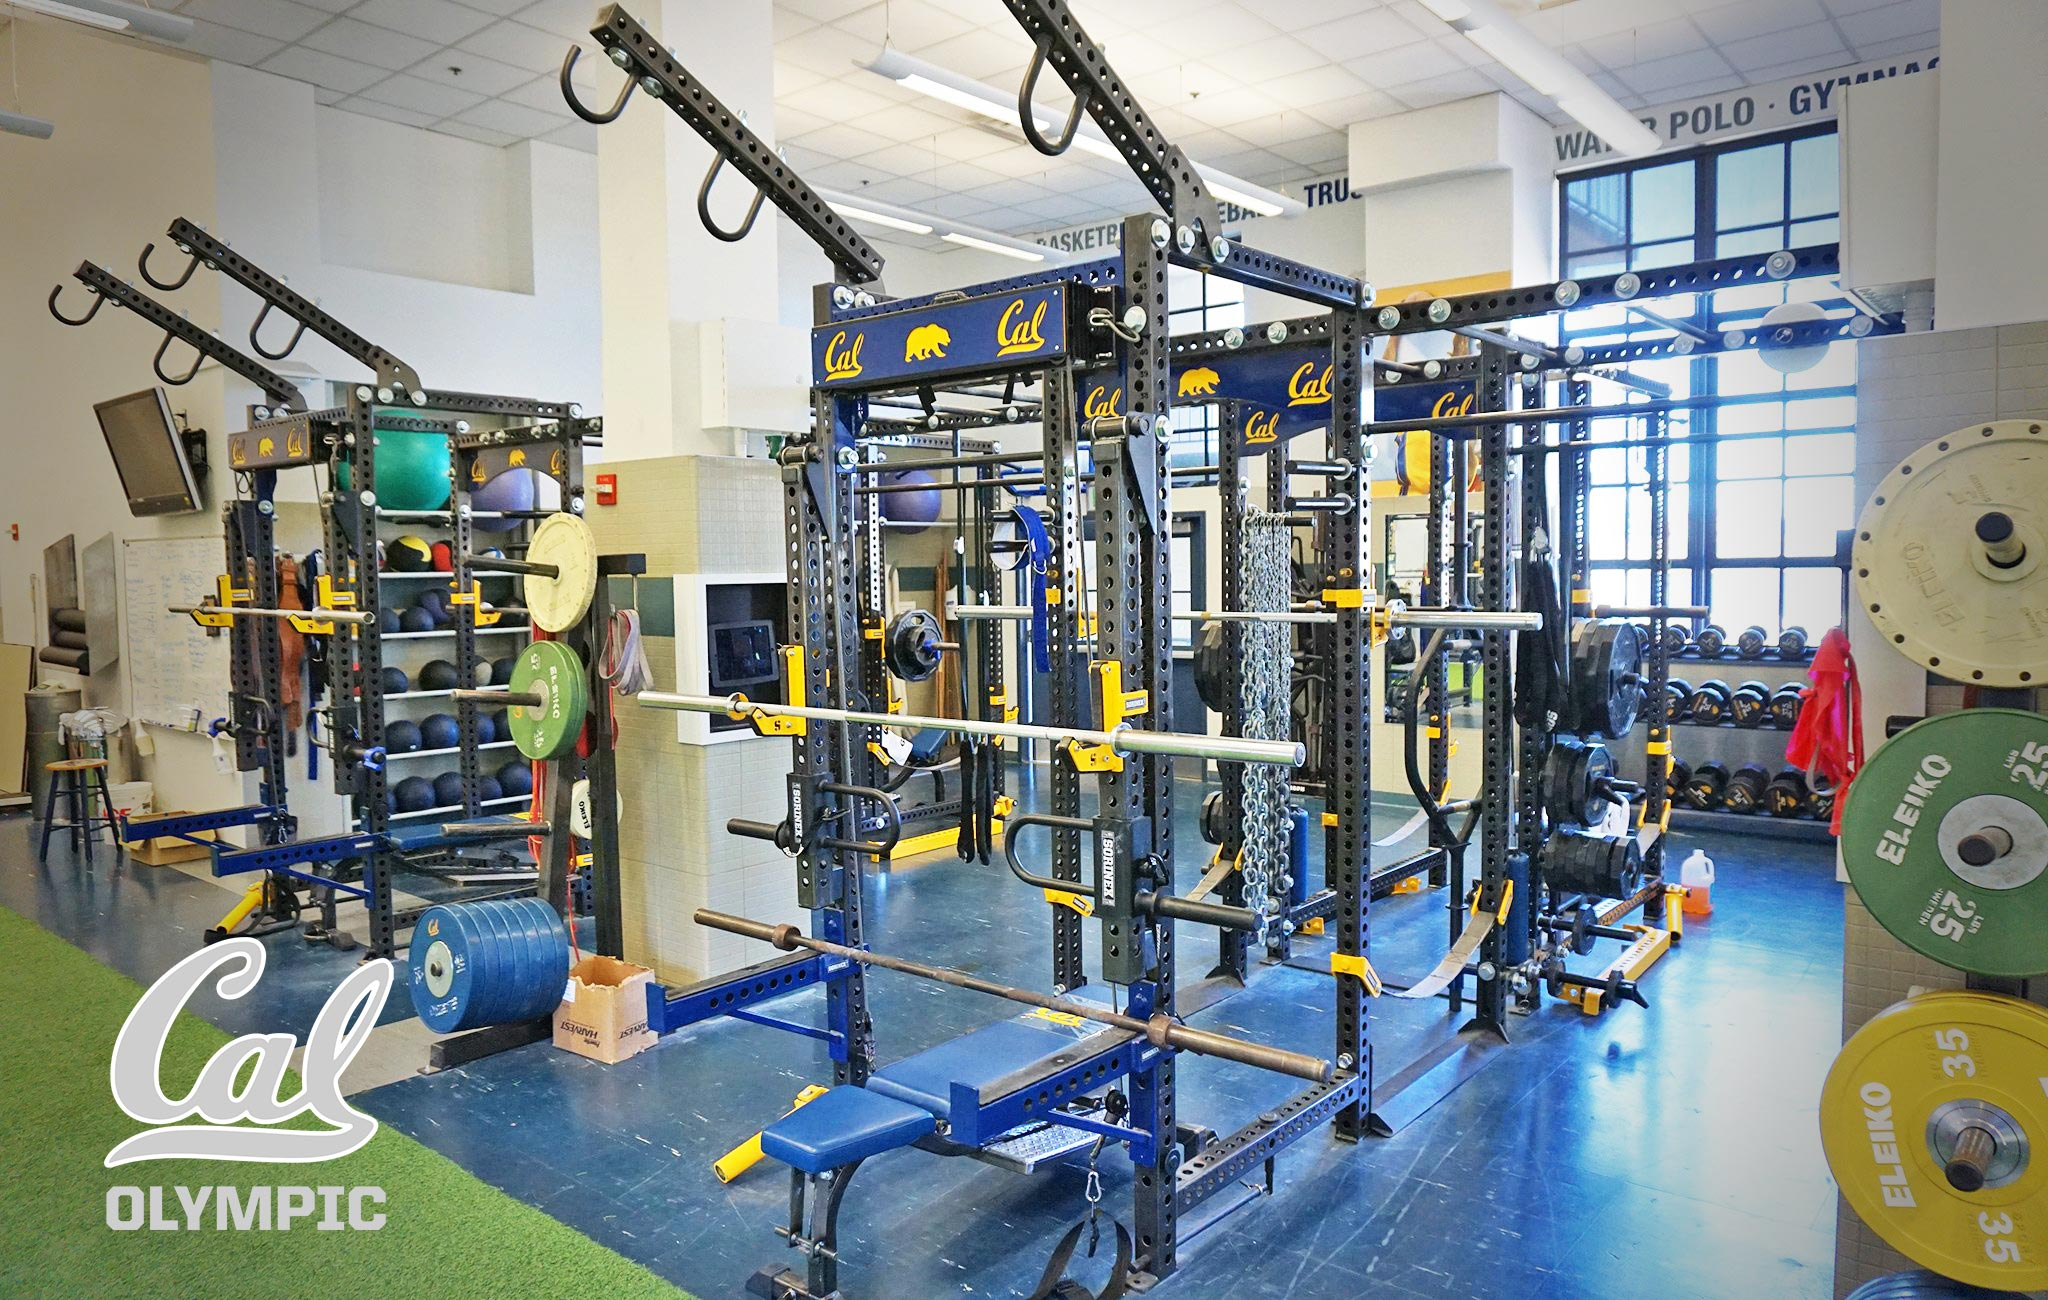 University of california olympic Sorinex strength and conditioning facility